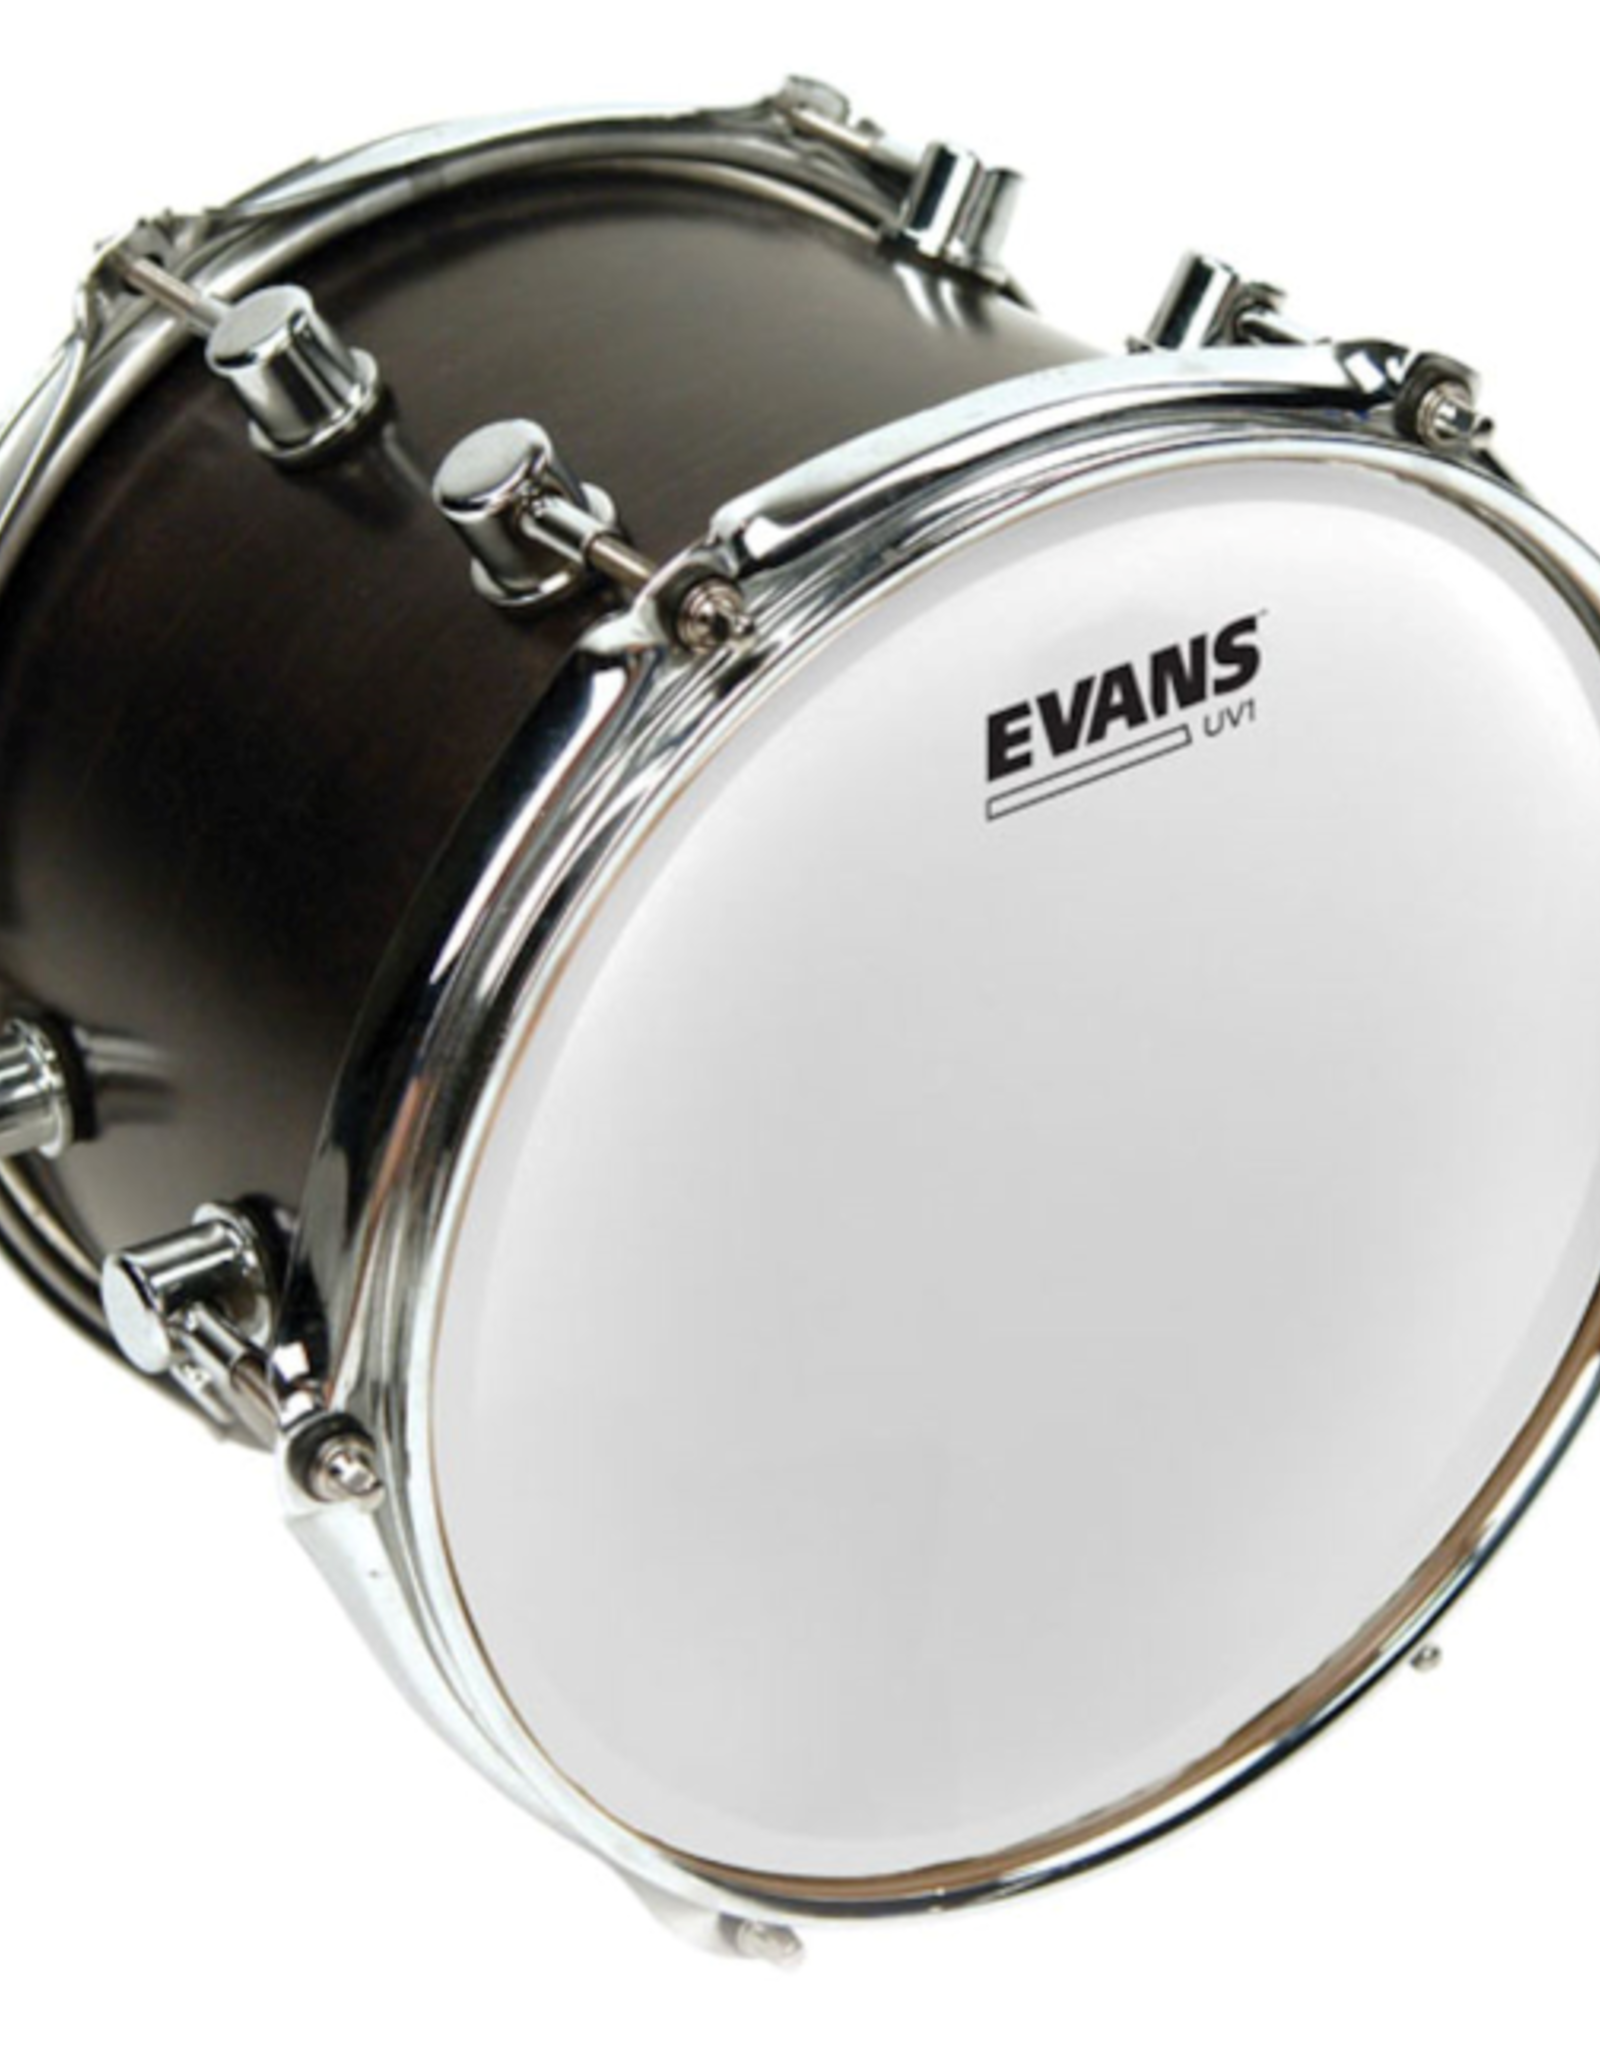 "Evans Evans 16"" UV1 Coated Drum head"